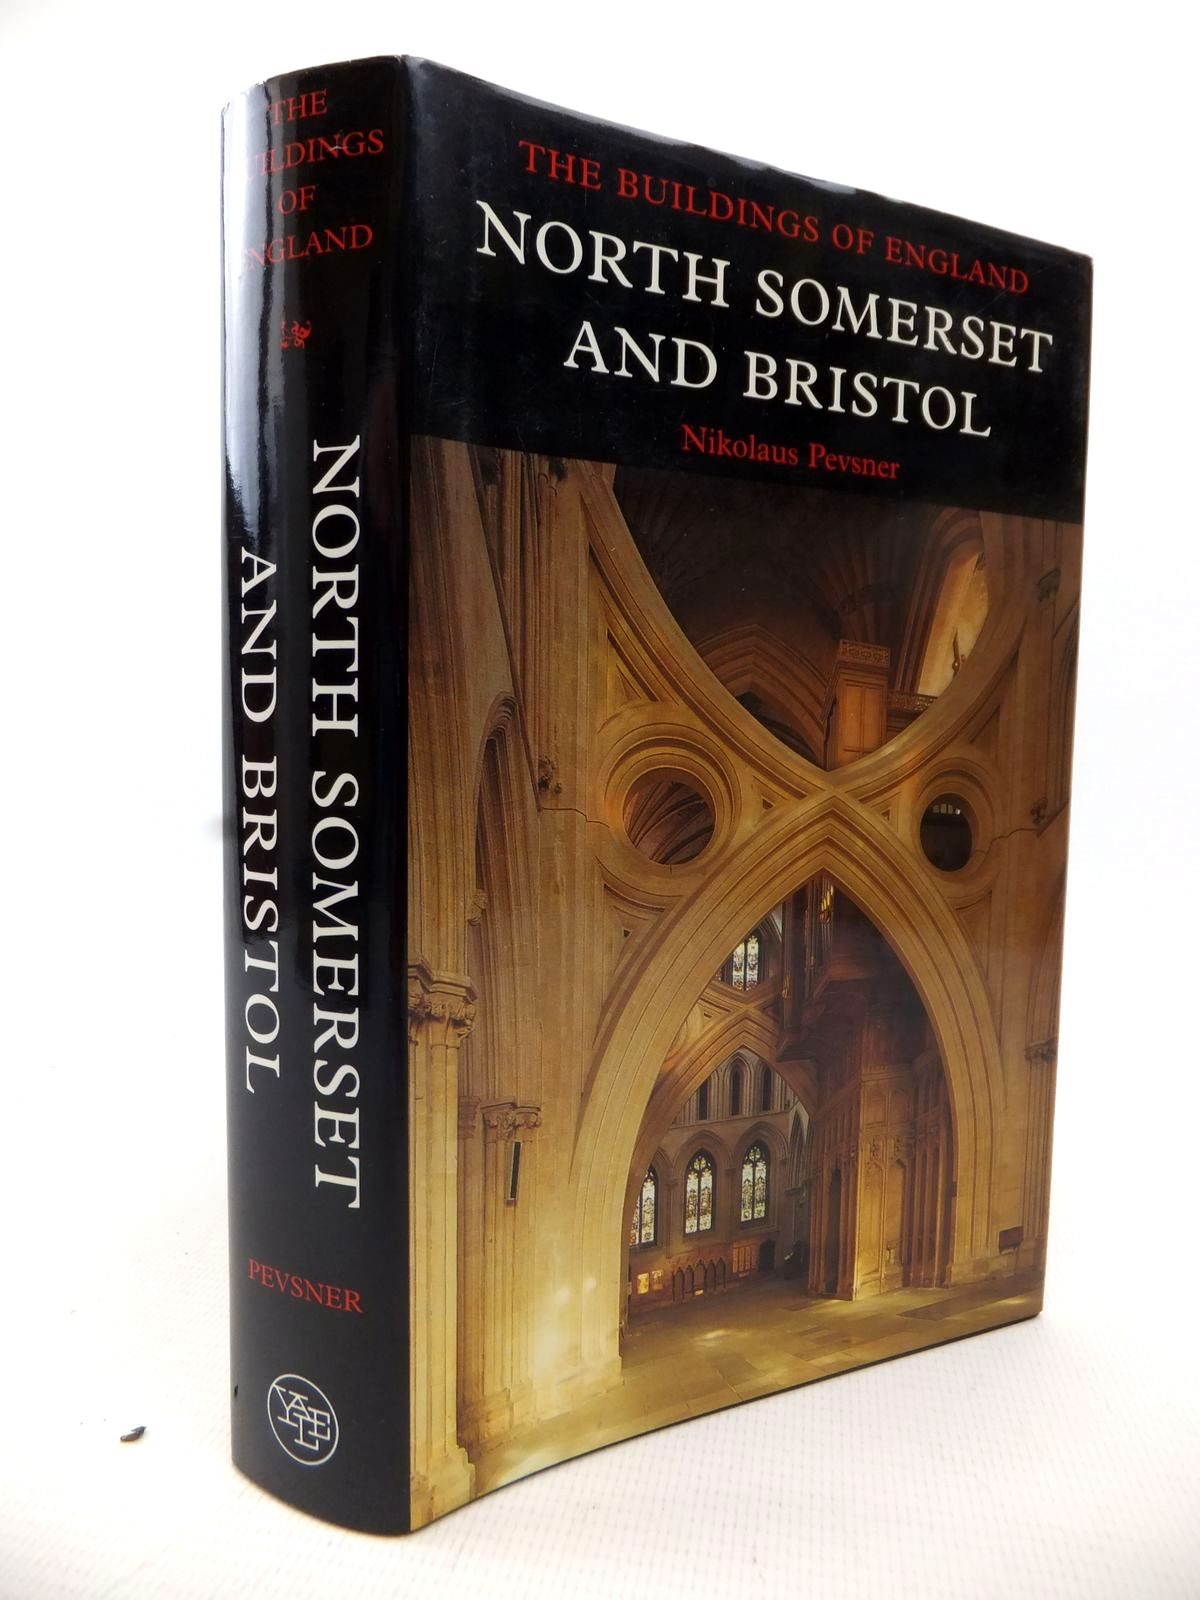 Photo of NORTH SOMERSET AND BRISTOL (BUILDINGS OF ENGLAND)